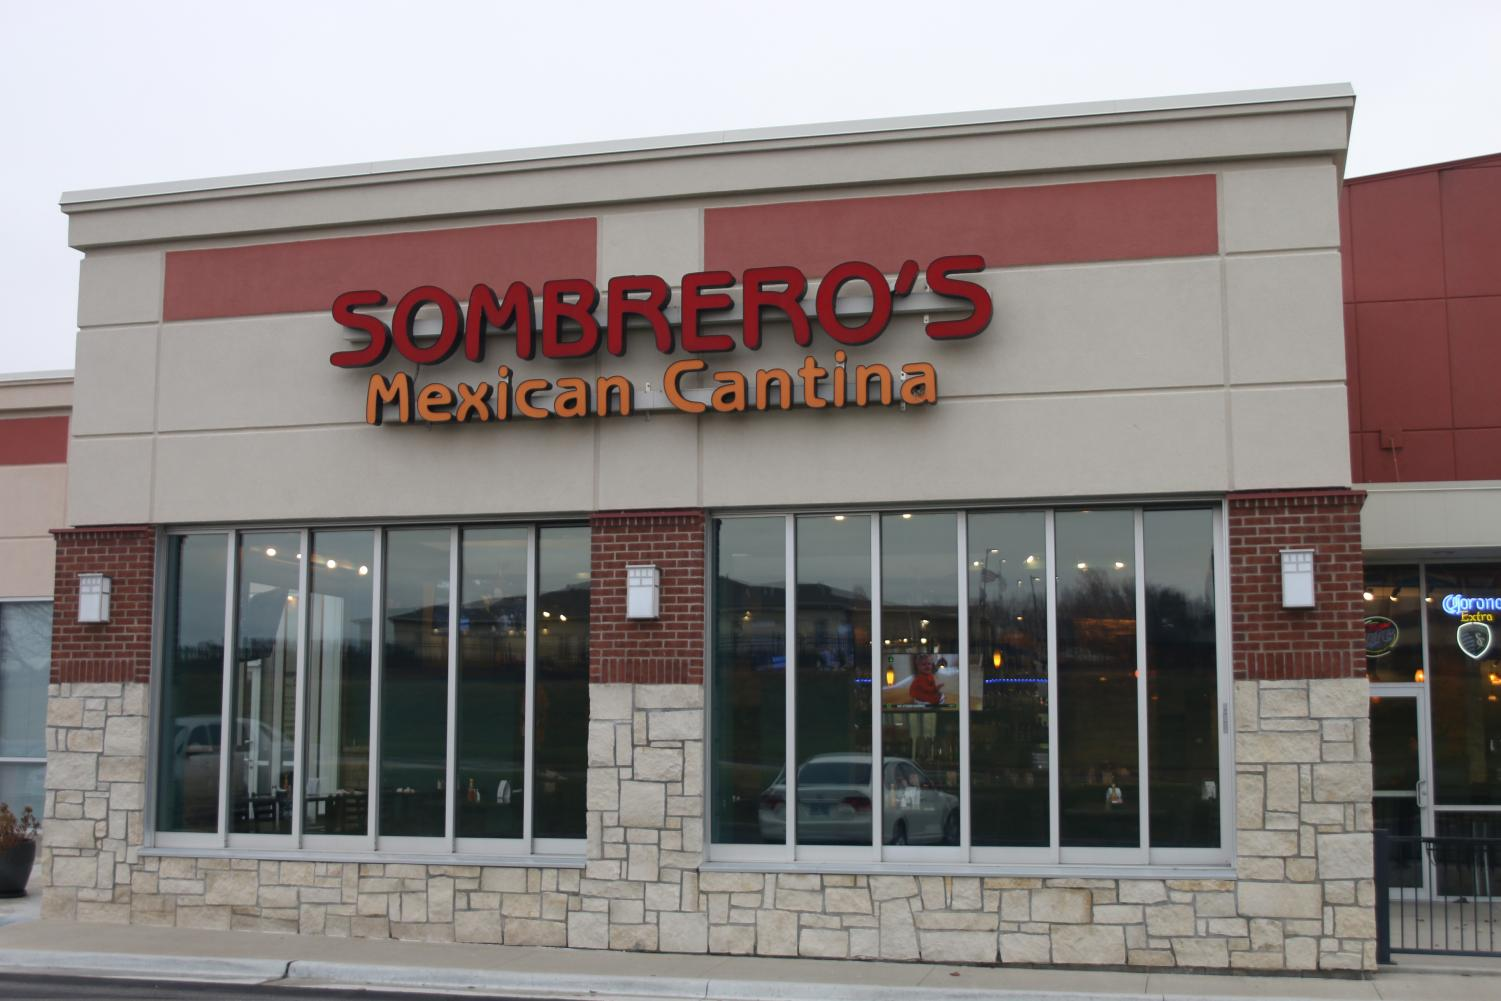 Sombreros is a family owned business in Shawnee, located off Midland Dr. Their casual atmosphere is catered to local families.